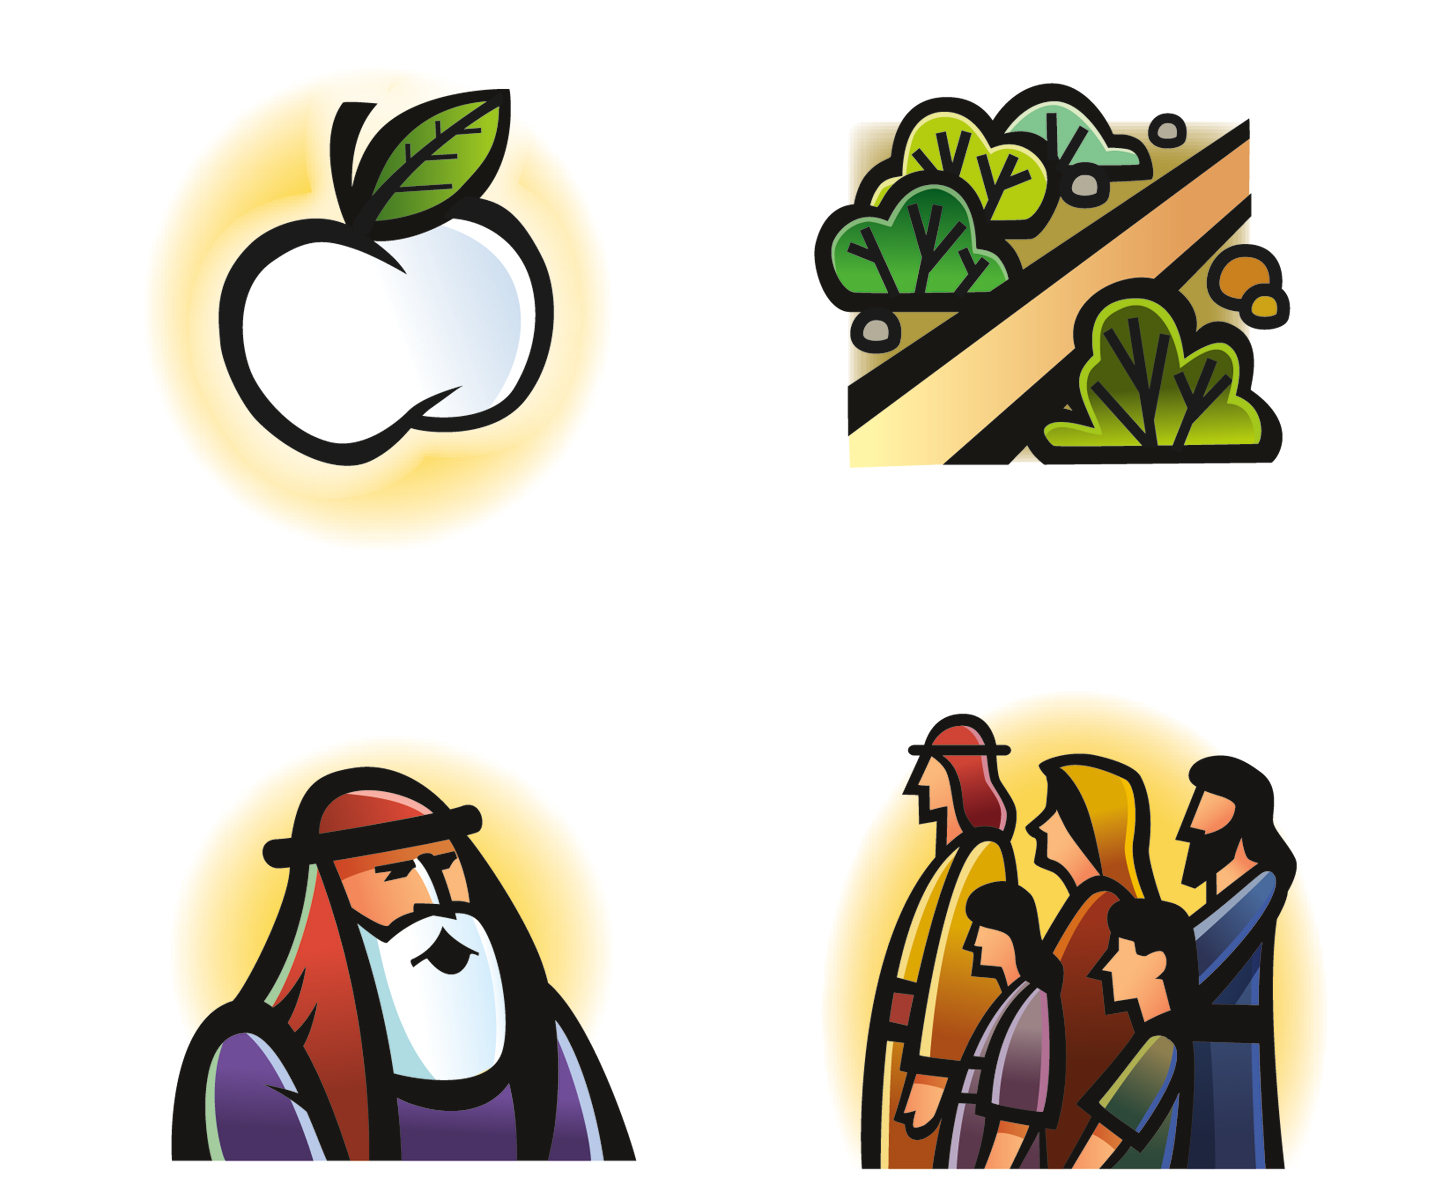 lds clipart at getdrawings com free for personal use lds clipart rh getdrawings com LDS Service Clip Art LDS Repentance Clip Art